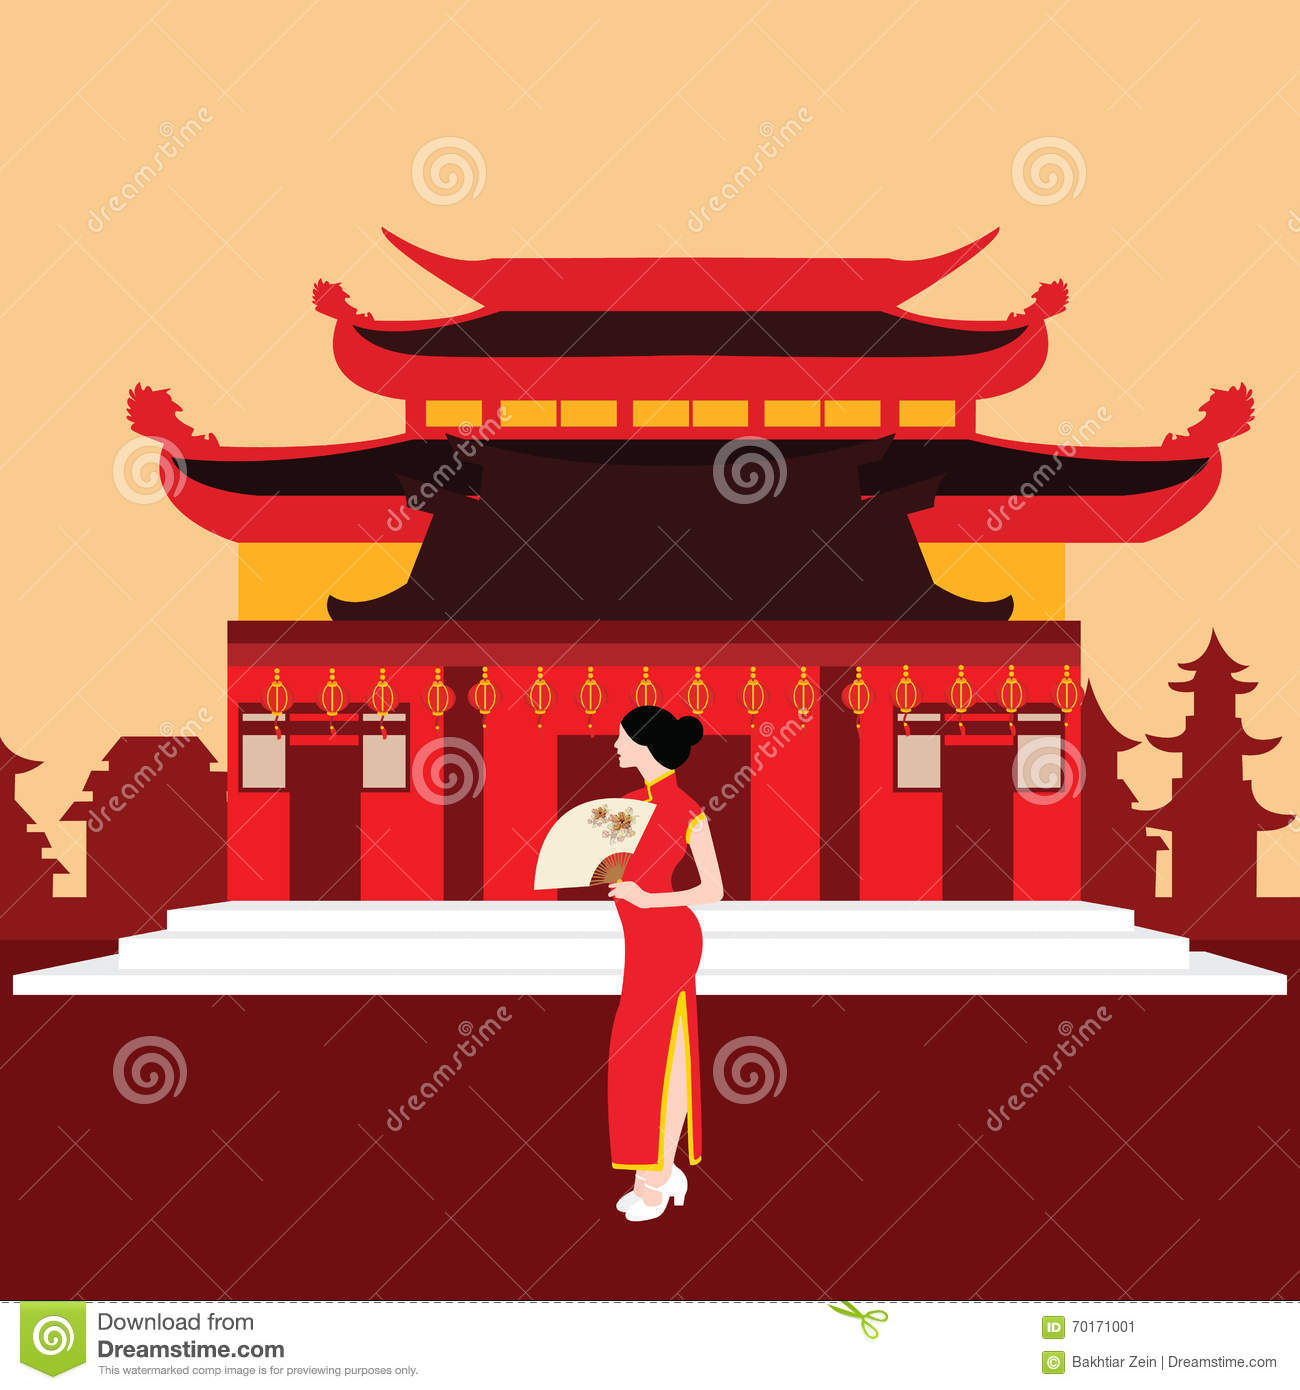 Temple Texas Traditional Home: China Traditional Home House Temple Red With Chinese Woman